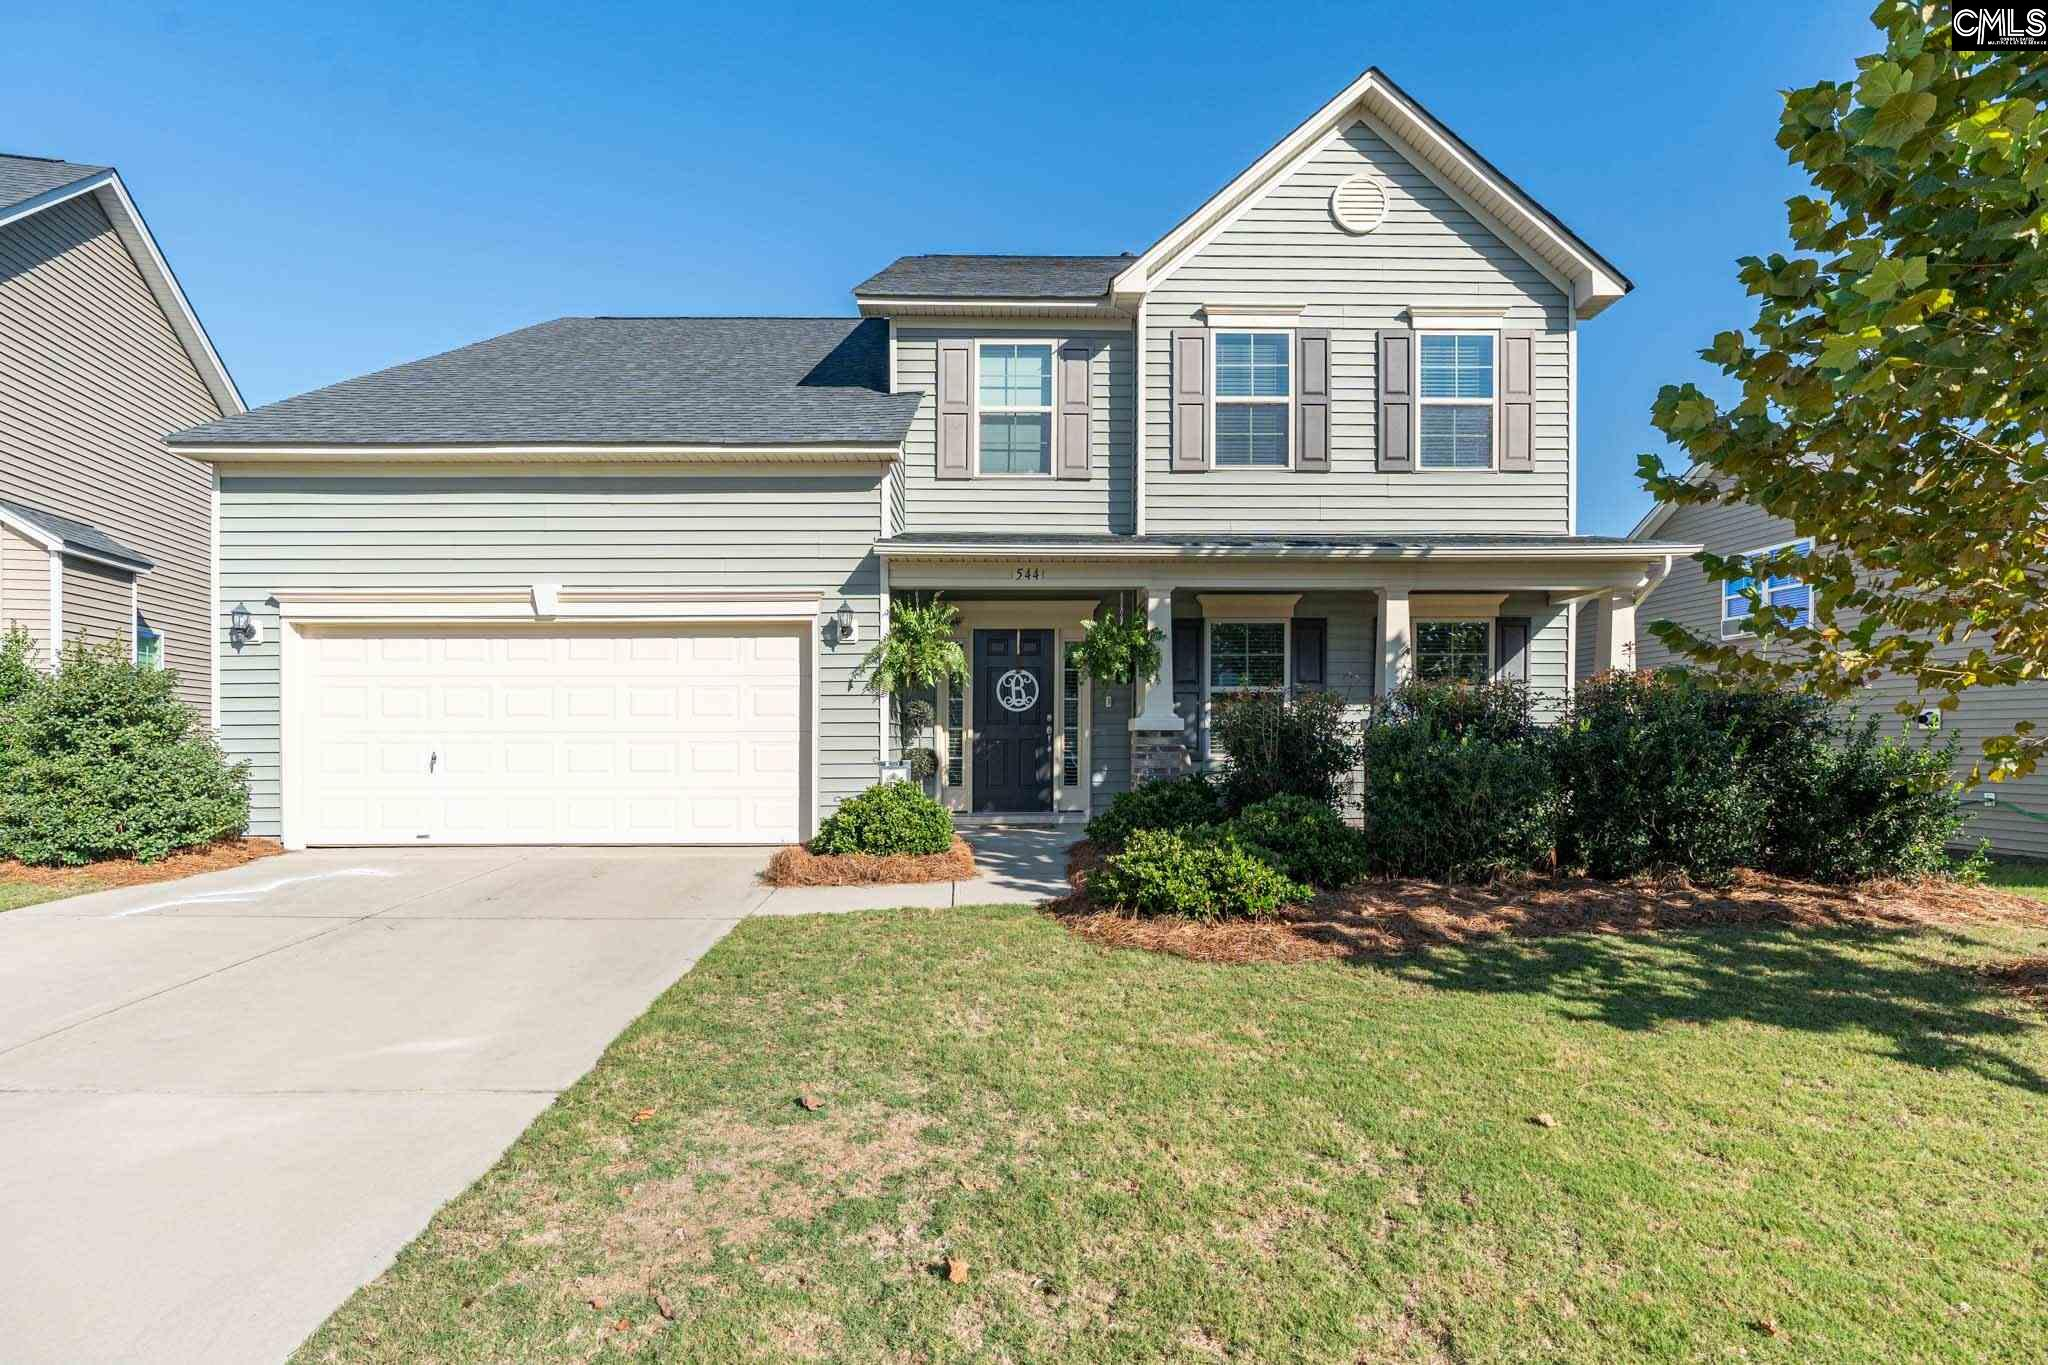 544 Blue Ledge Lexington, SC 29072-8349